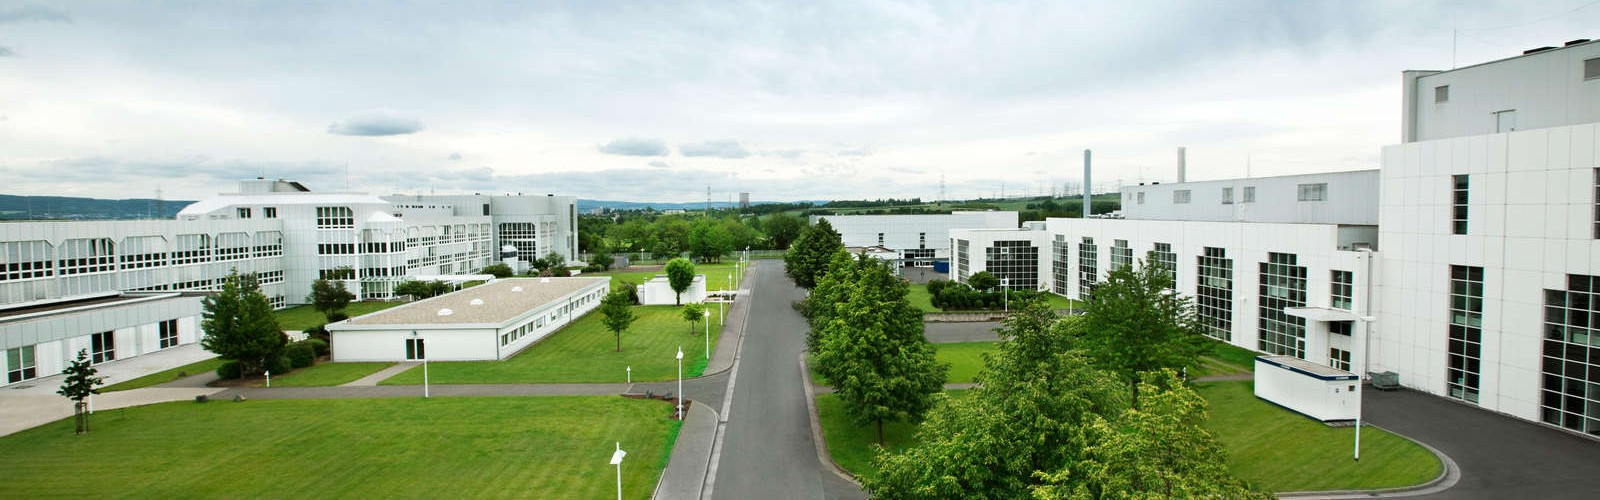 LTS Lohmann Therapie-Systeme AG, Andernach